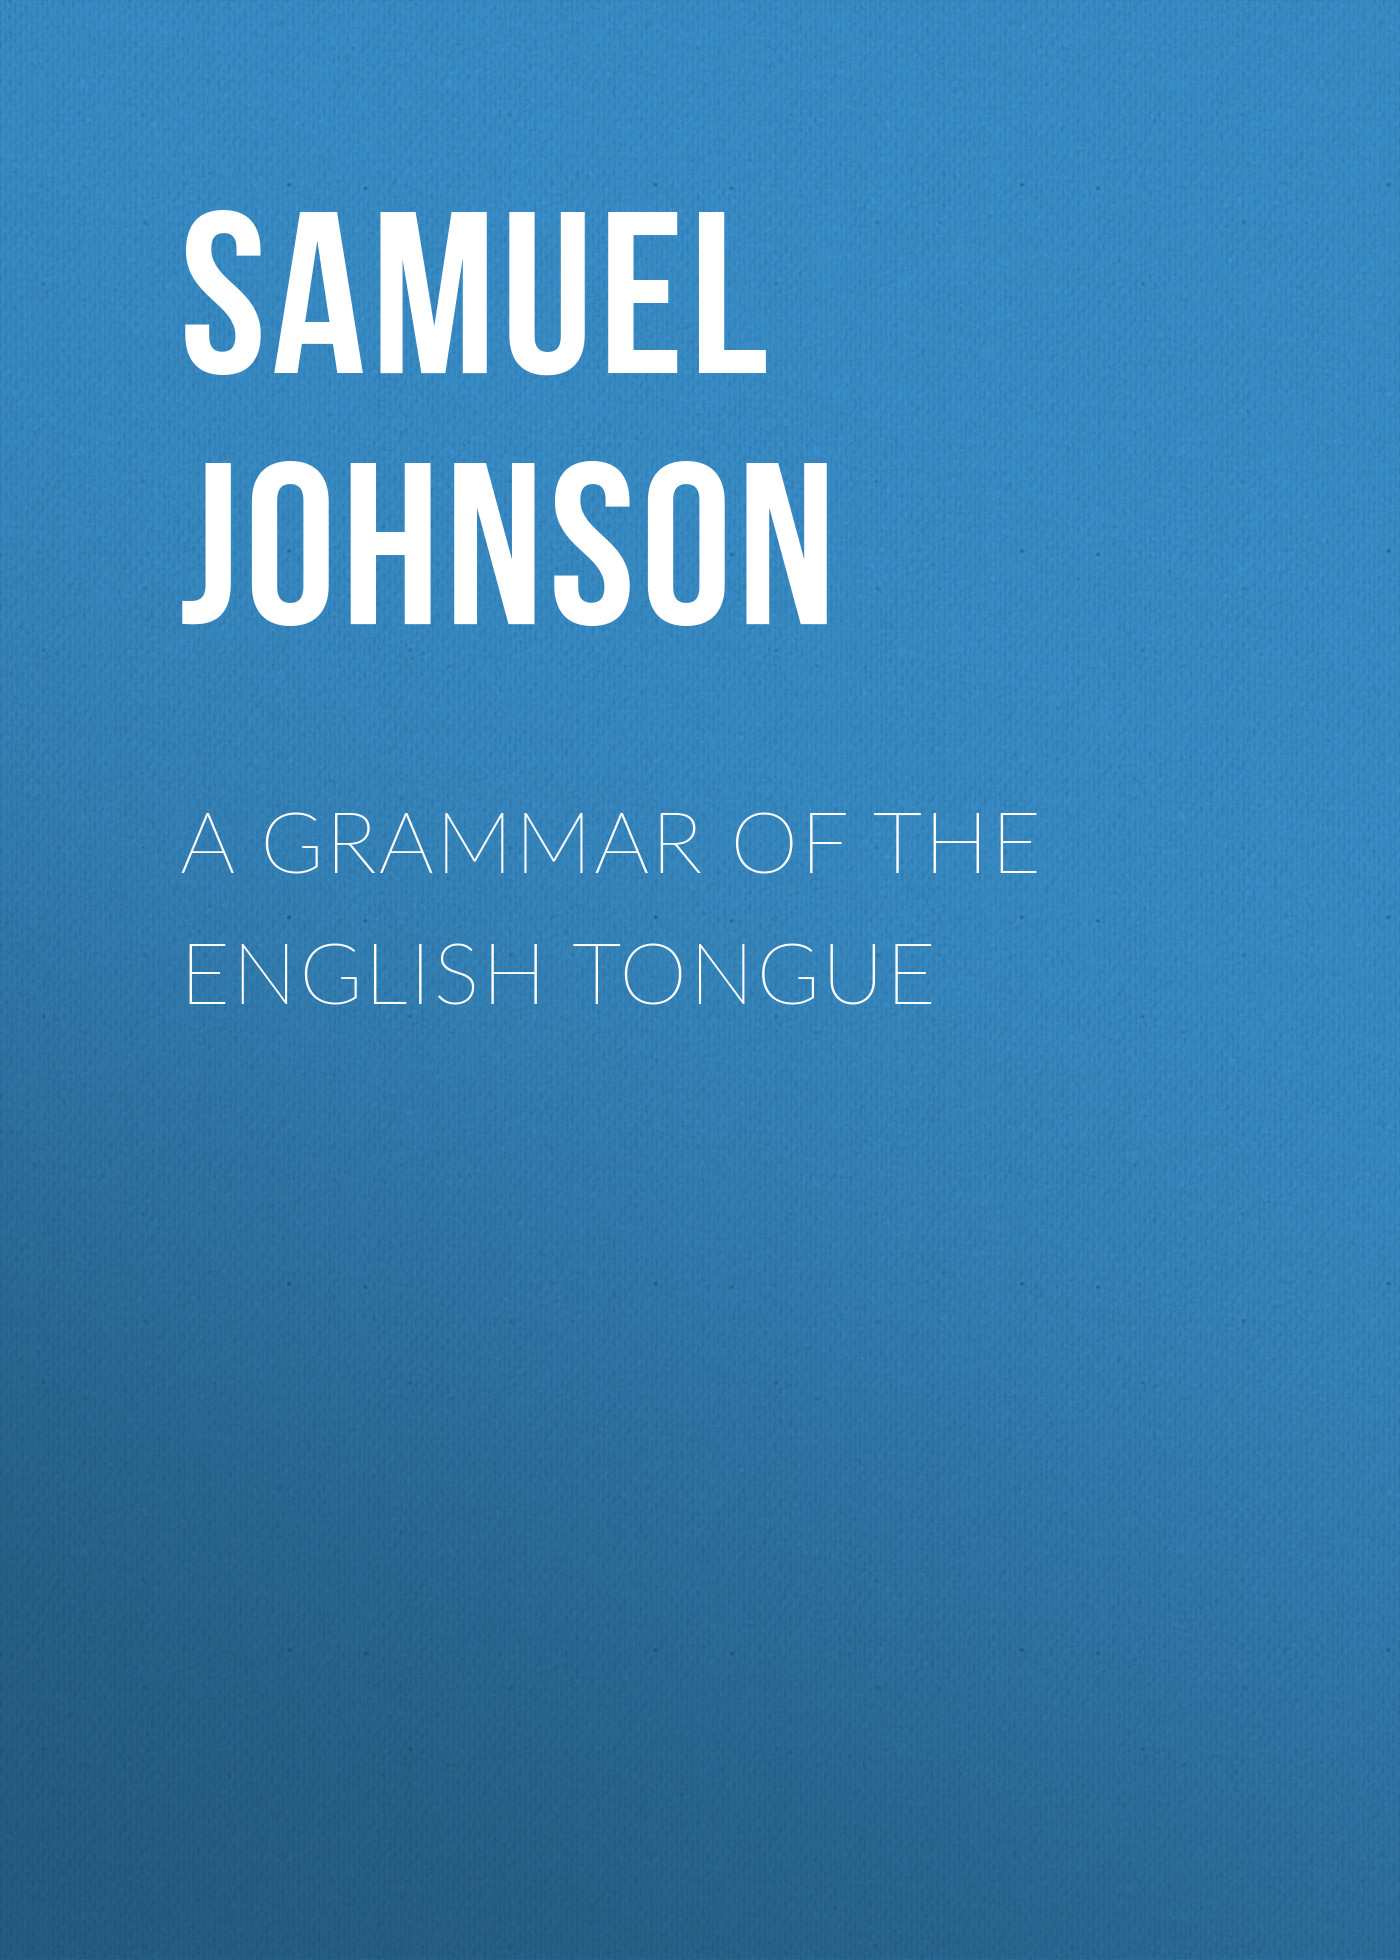 Samuel Johnson A Grammar of the English Tongue leigh percival the comic english grammar a new and facetious introduction to the english tongue